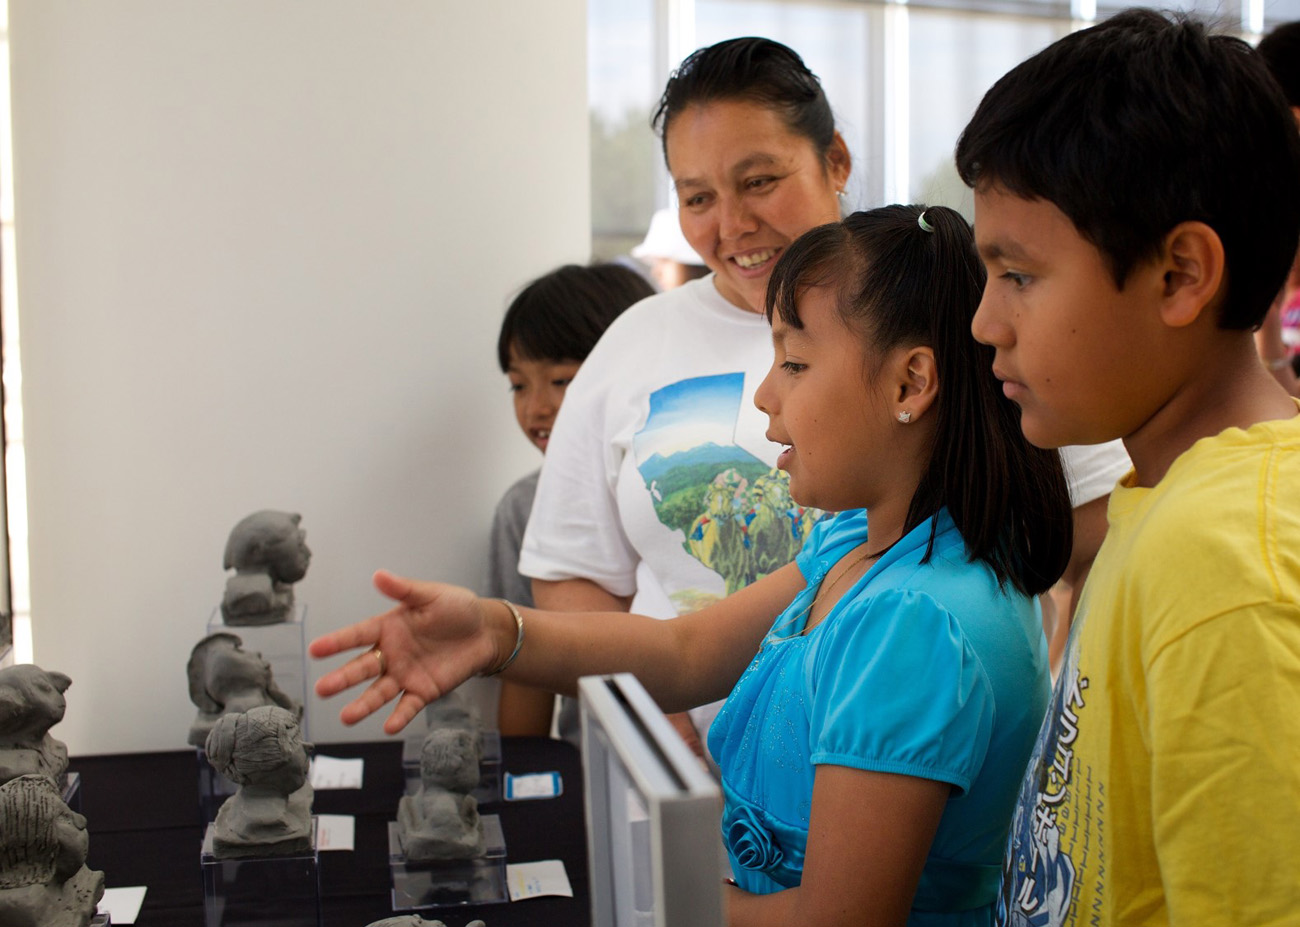 A student shows off her artwork to a family member during the art@thecore culminating event at the Getty Center. Photo courtesy Alyssa Fedele, Collective Hunch. All rights reserved